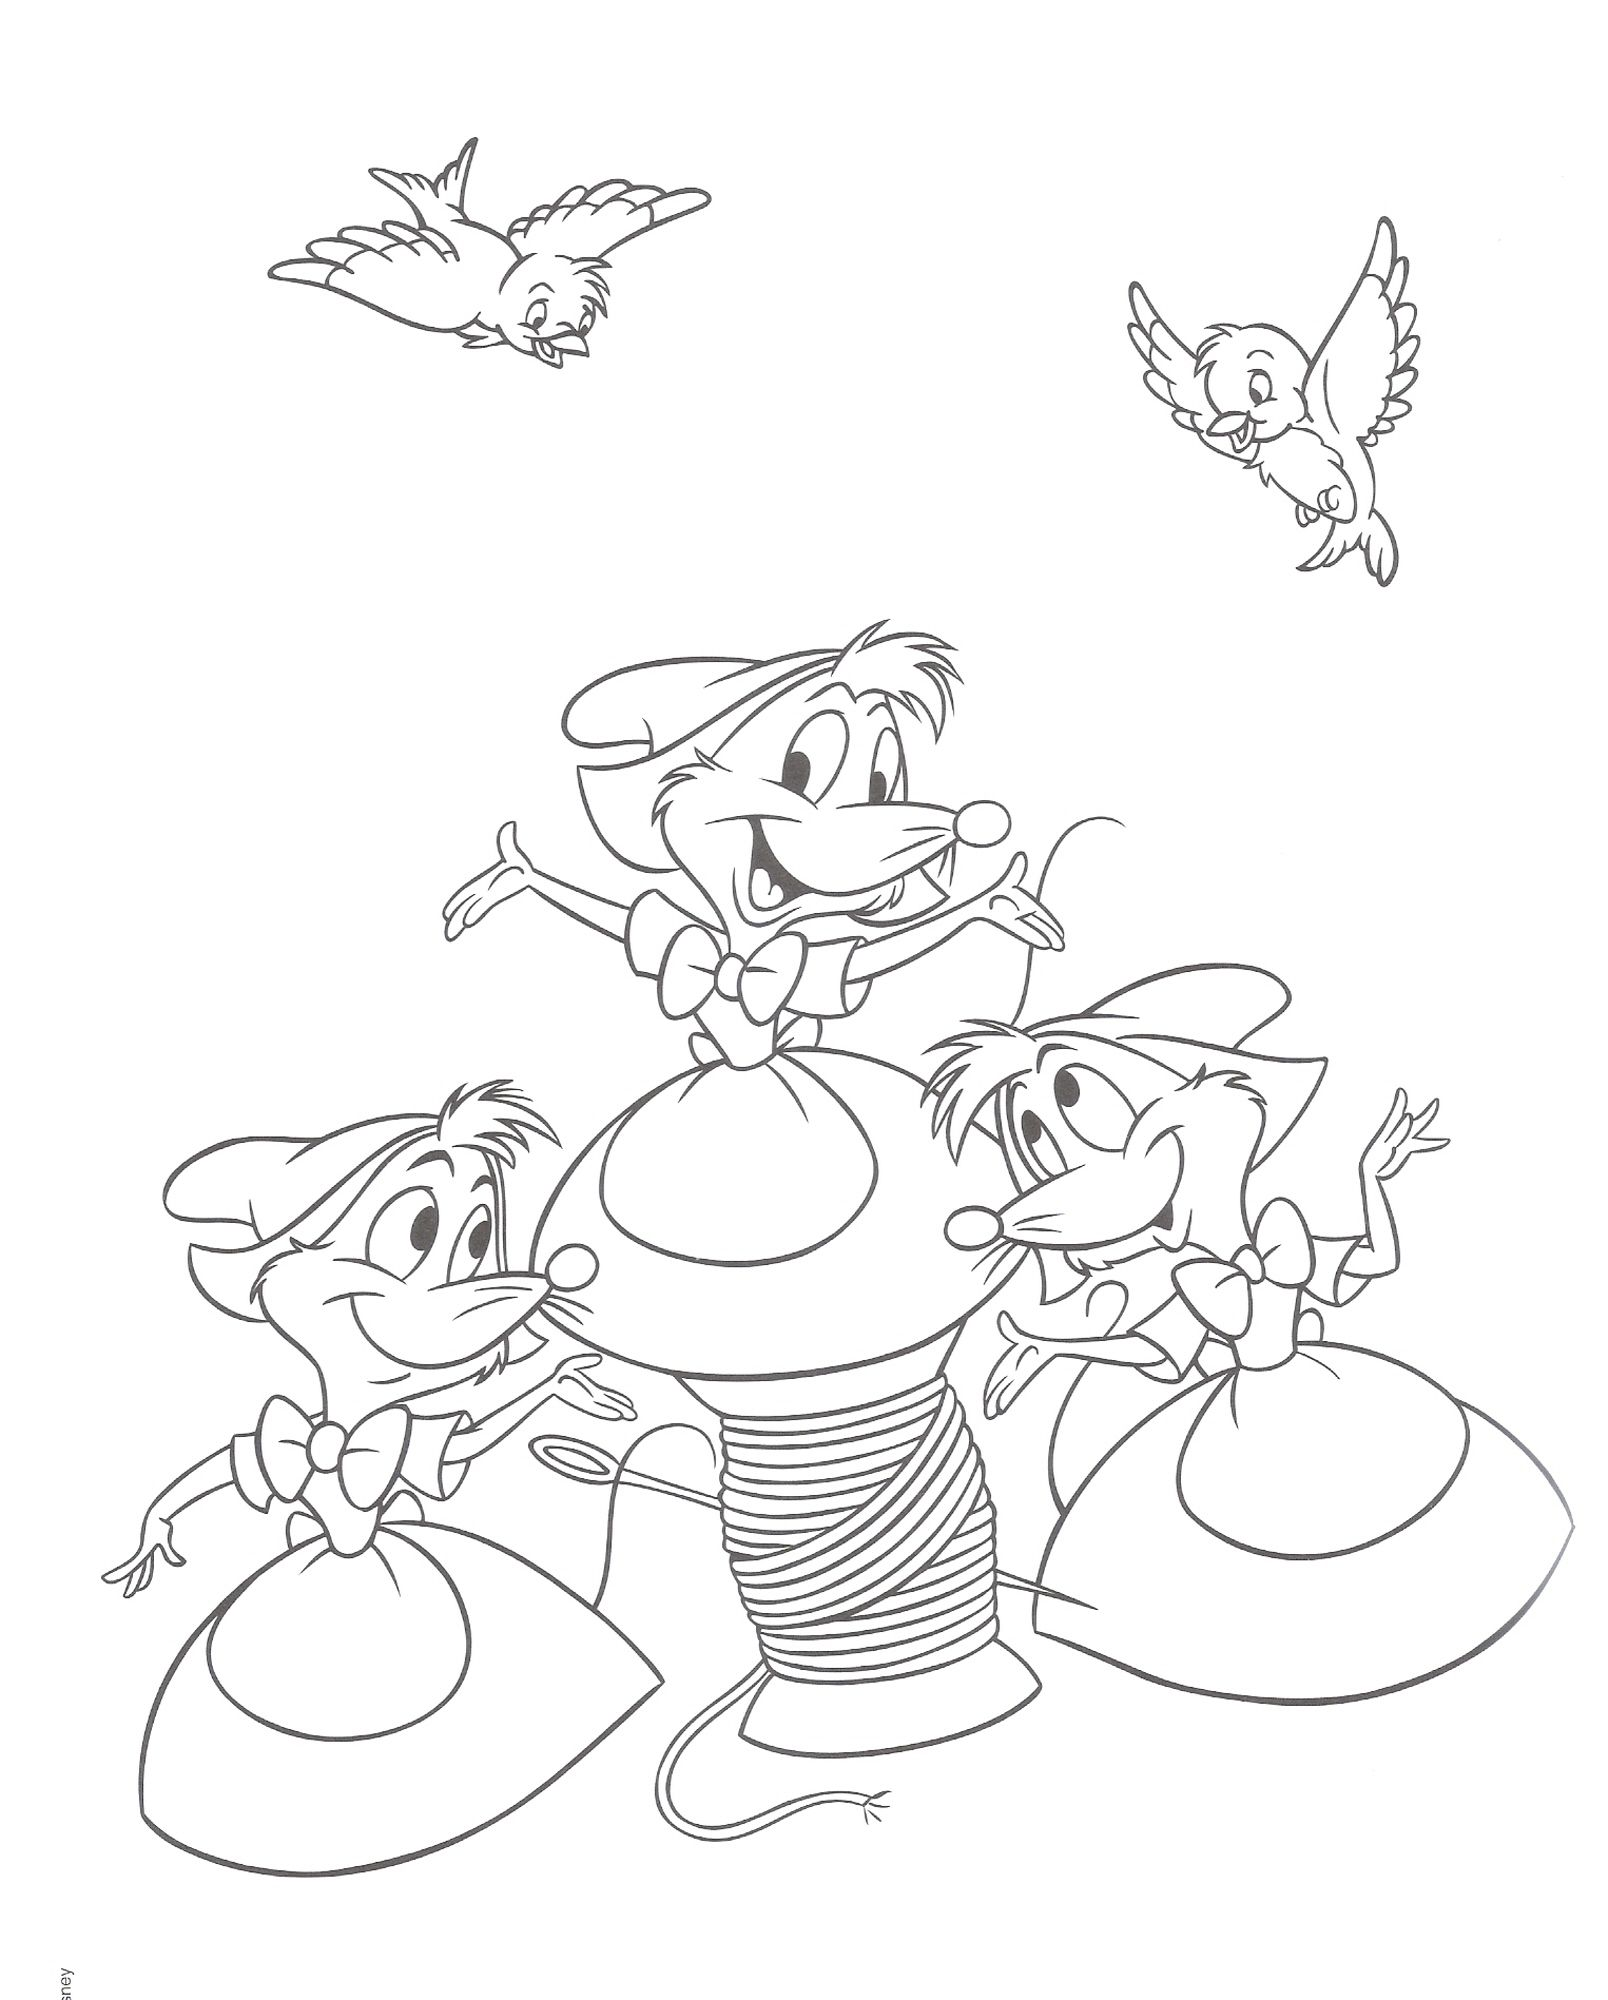 Cinderella coloring page with the mice | Free Coloring Pages ...